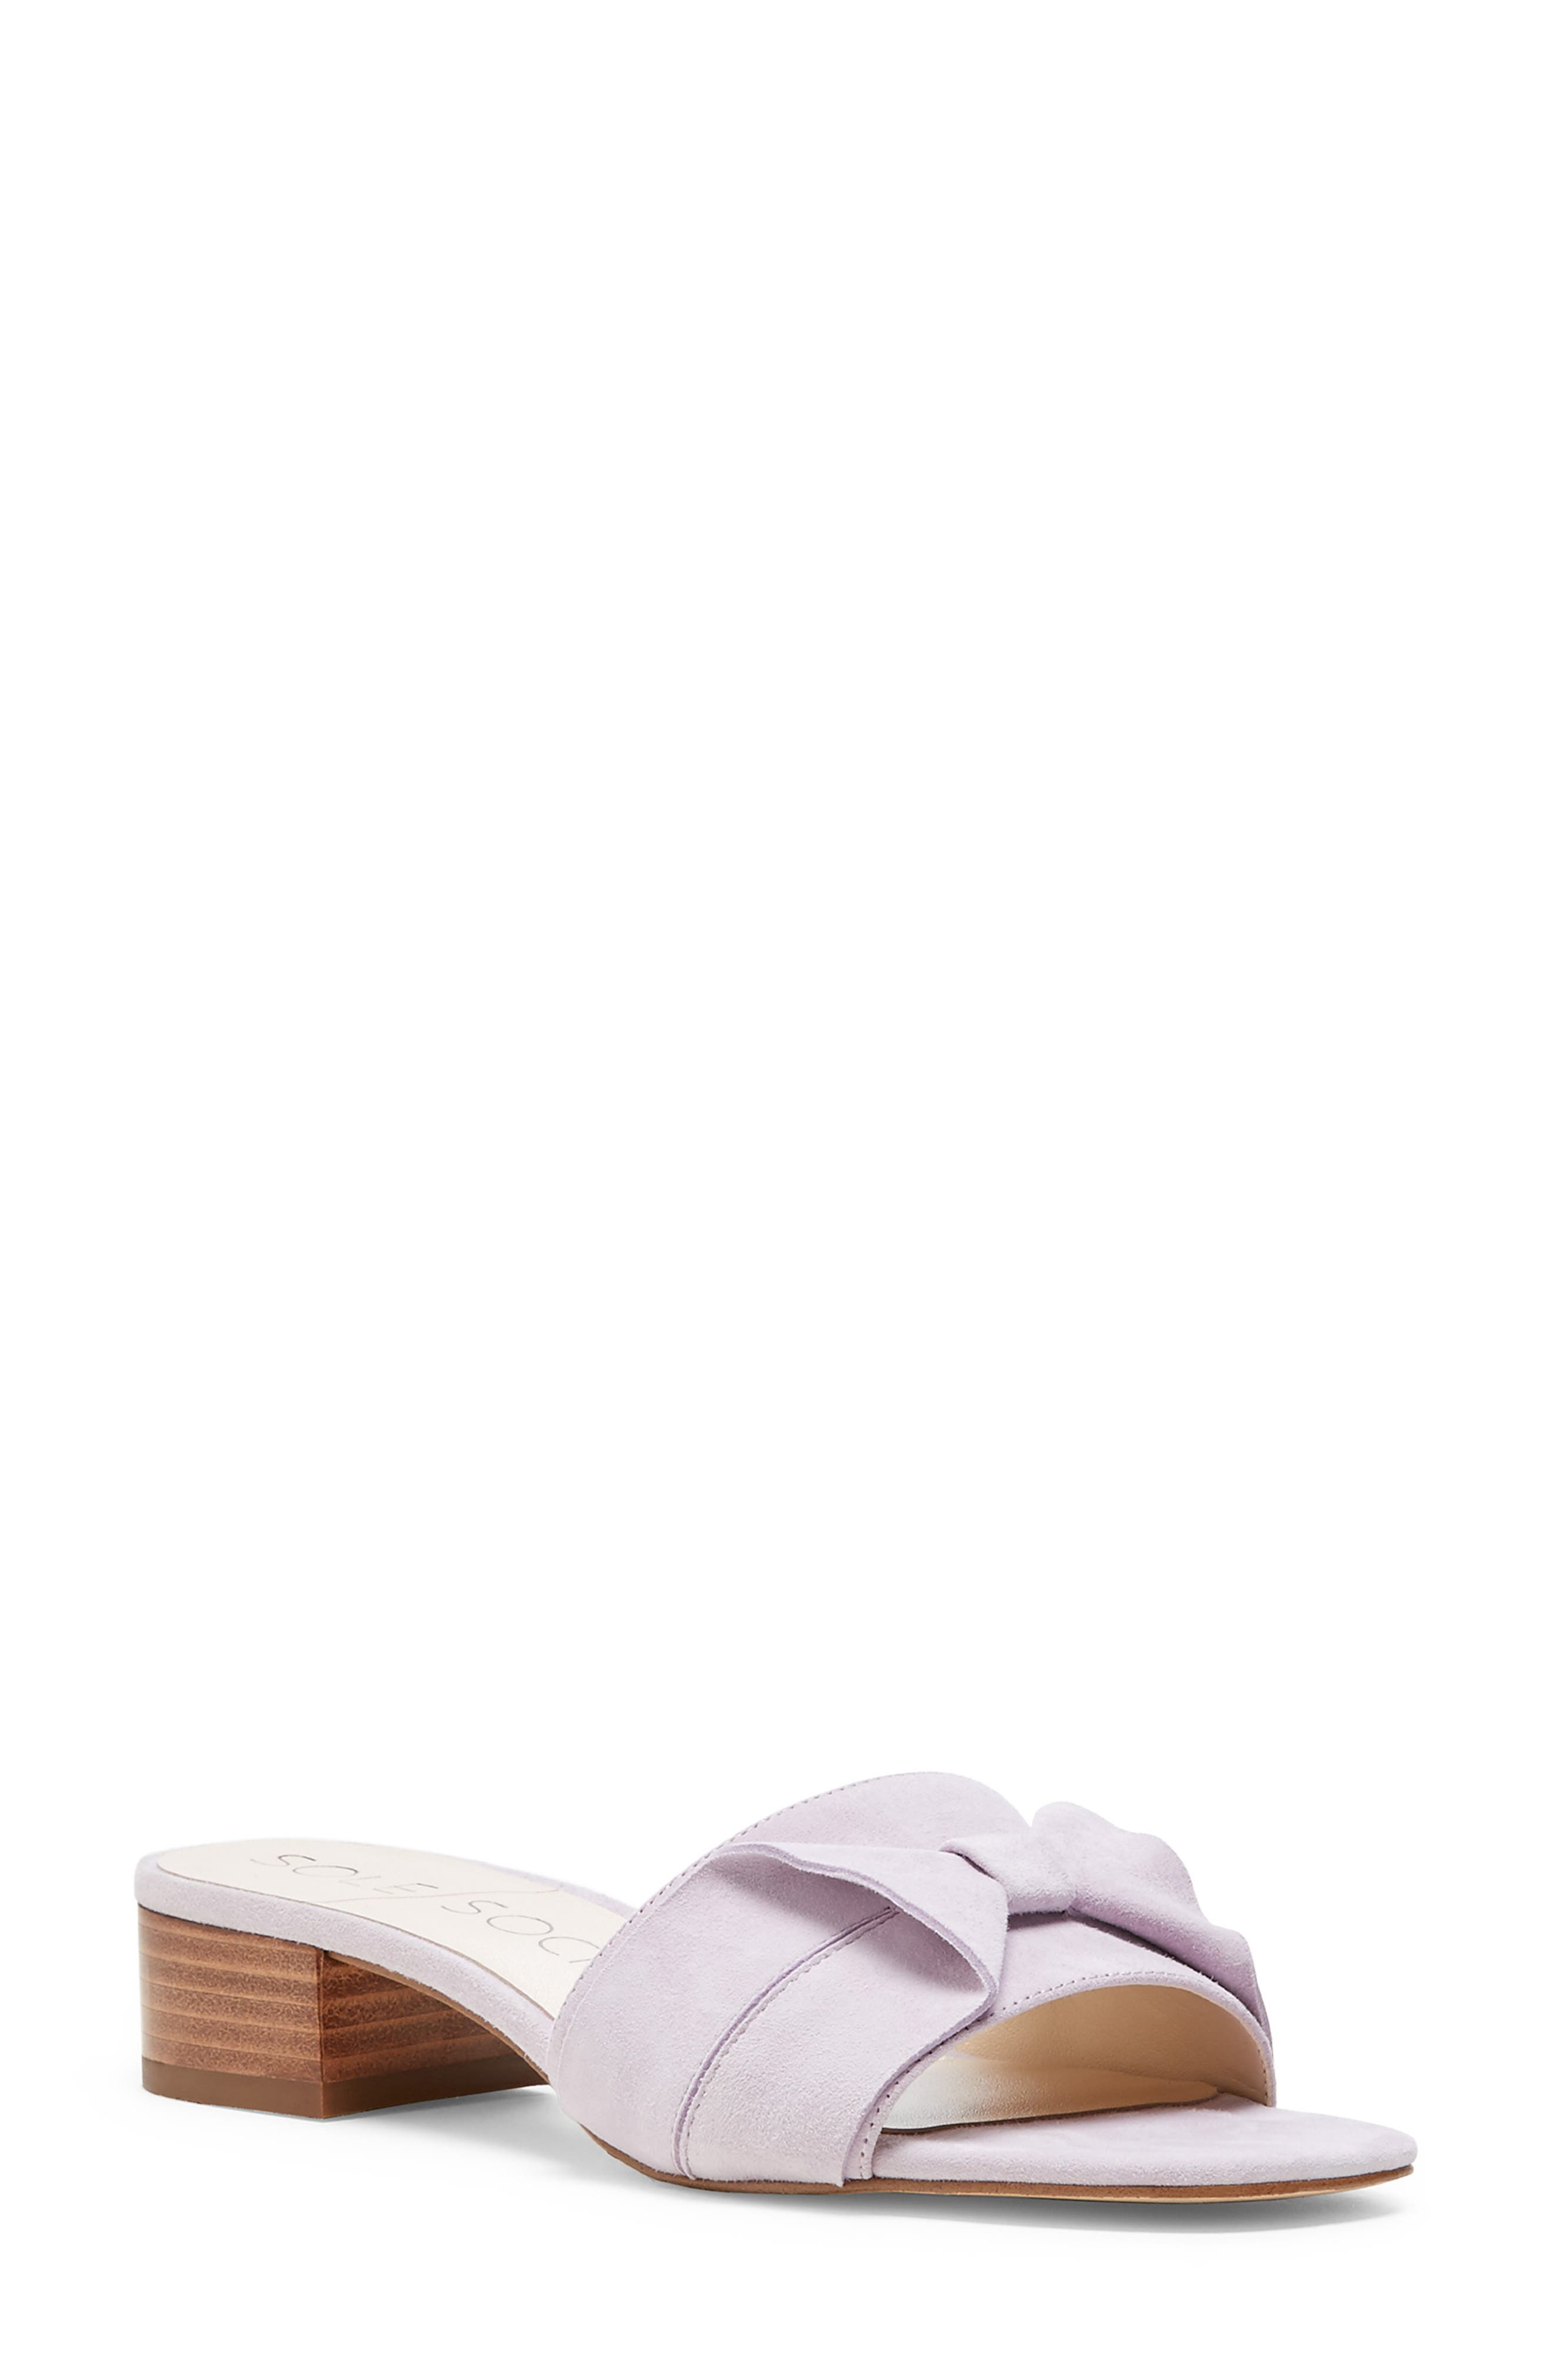 SOLE SOCIETY, Erianna Bow Slide Sandal, Main thumbnail 1, color, WASHED LAVENDER SUEDE